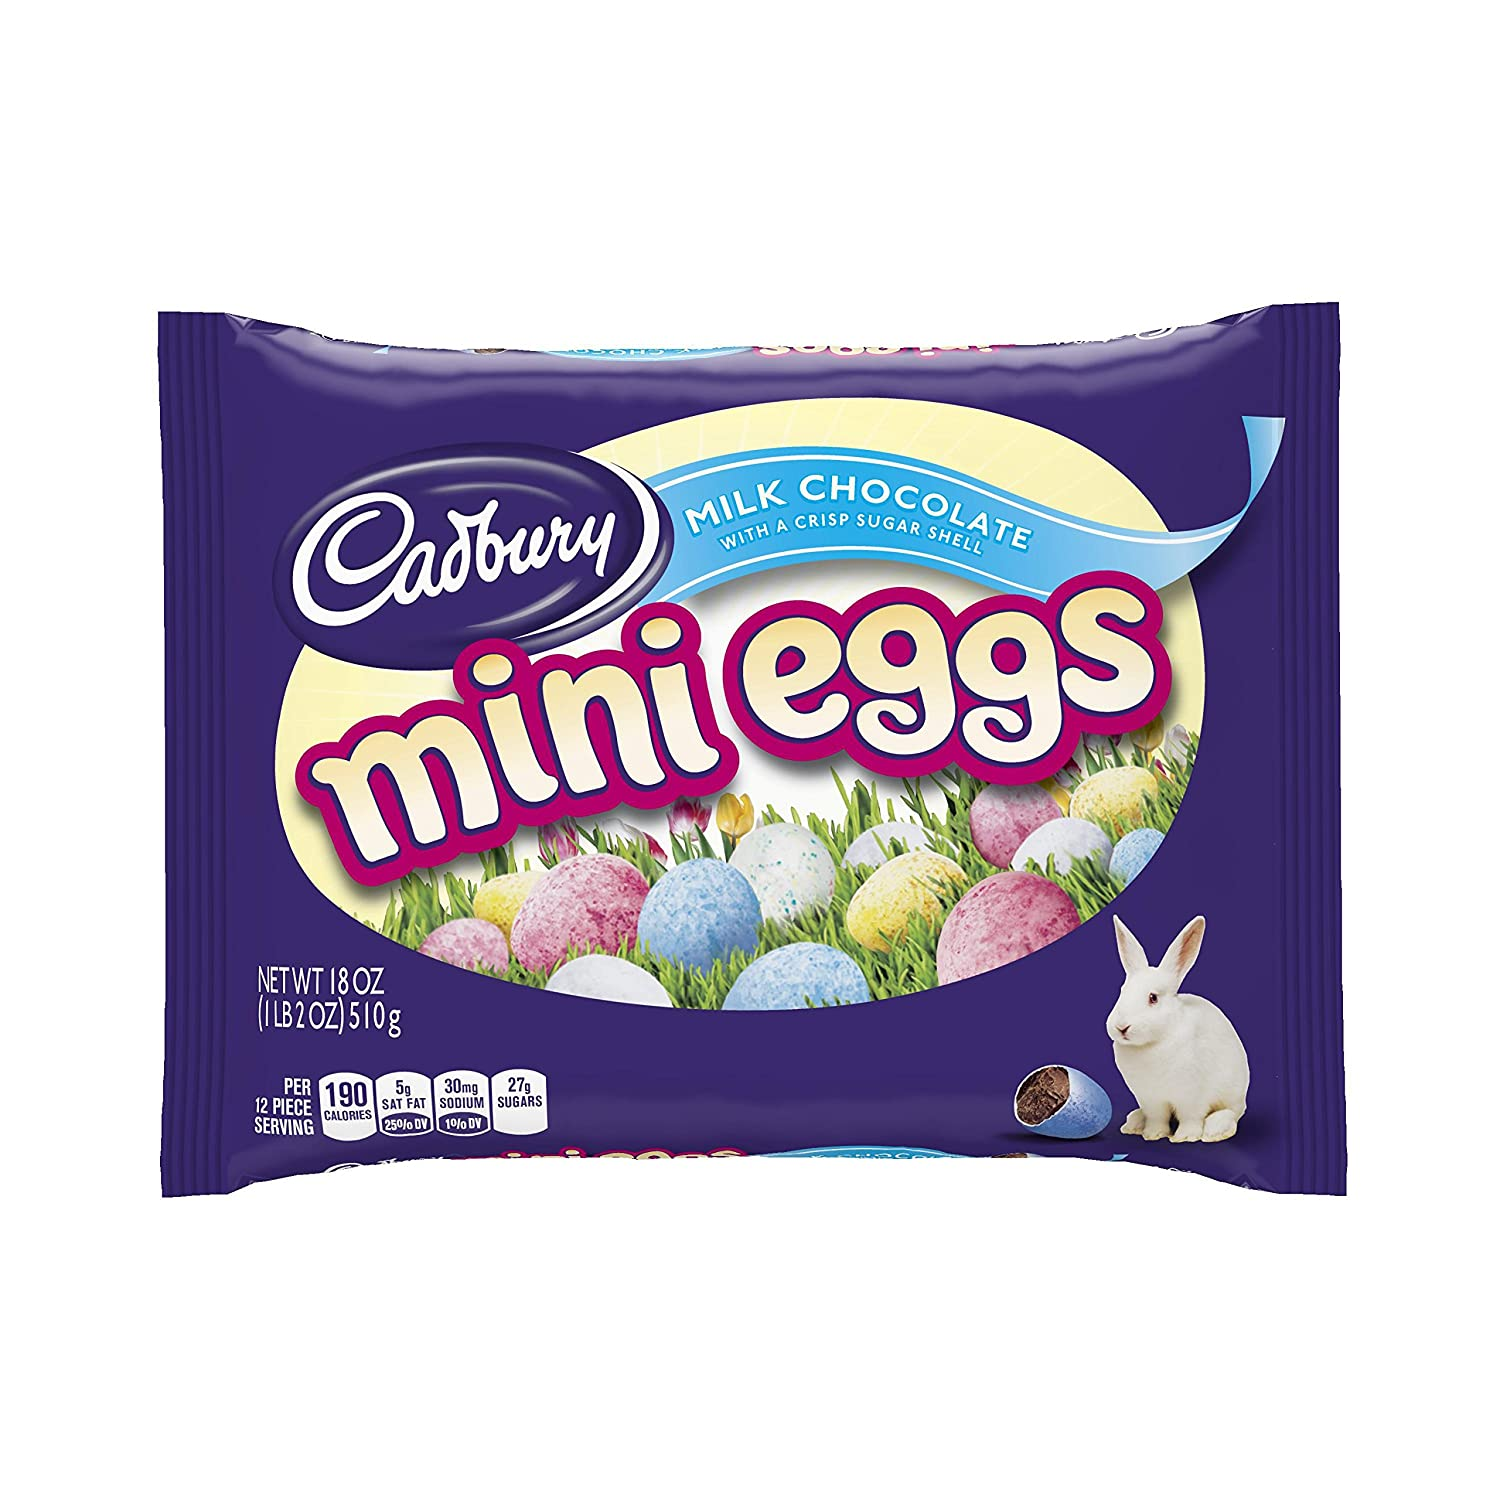 Cadbury Easter Coated 18 Ounce Packages Image 1